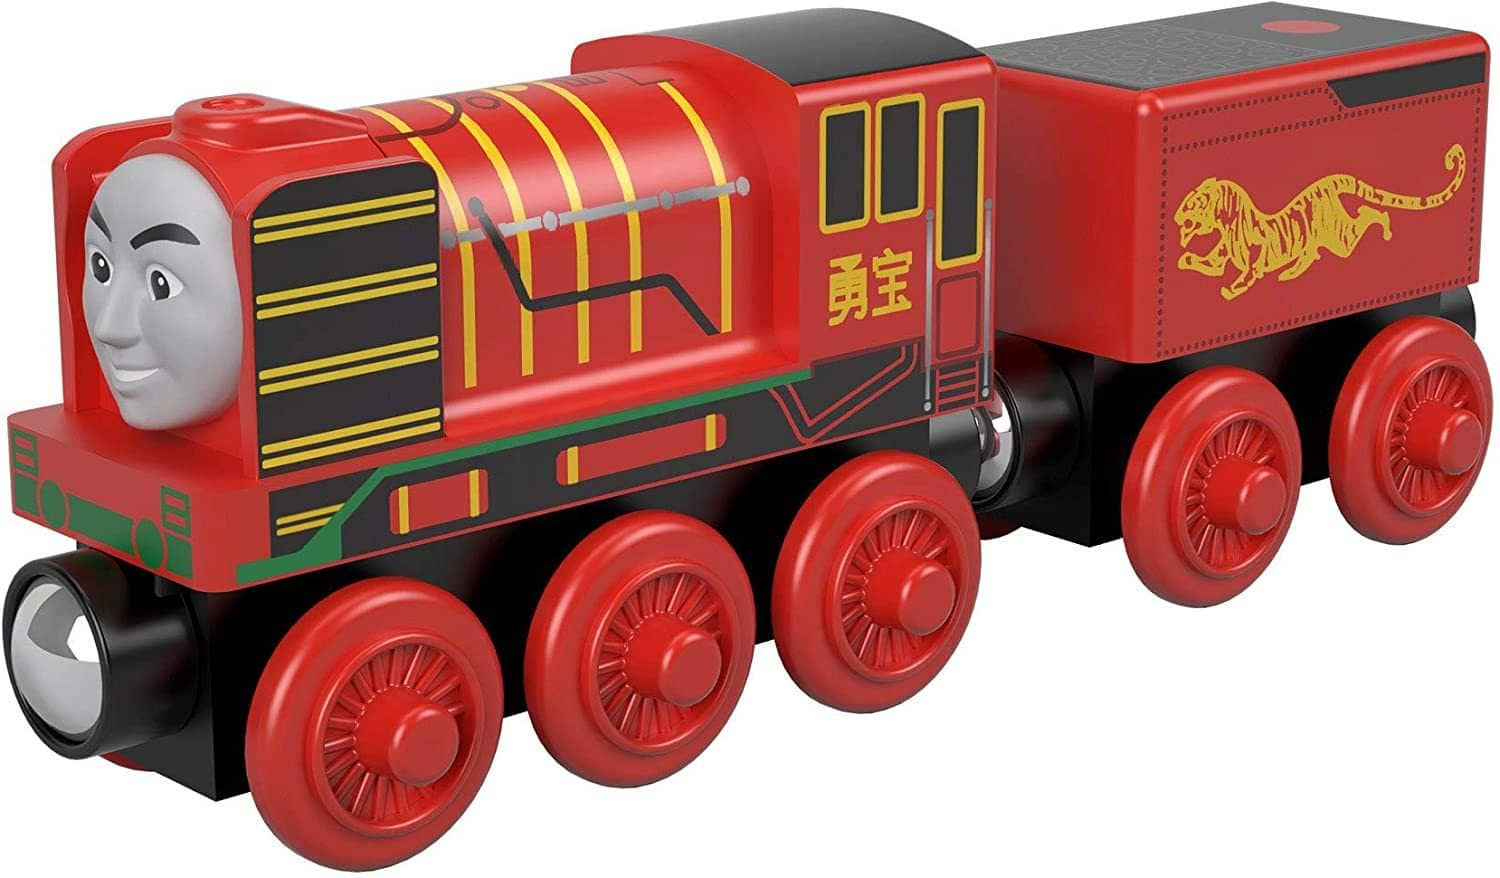 Thomas & Friends Wooden Railway: Yong Bao-Kidding Around NYC